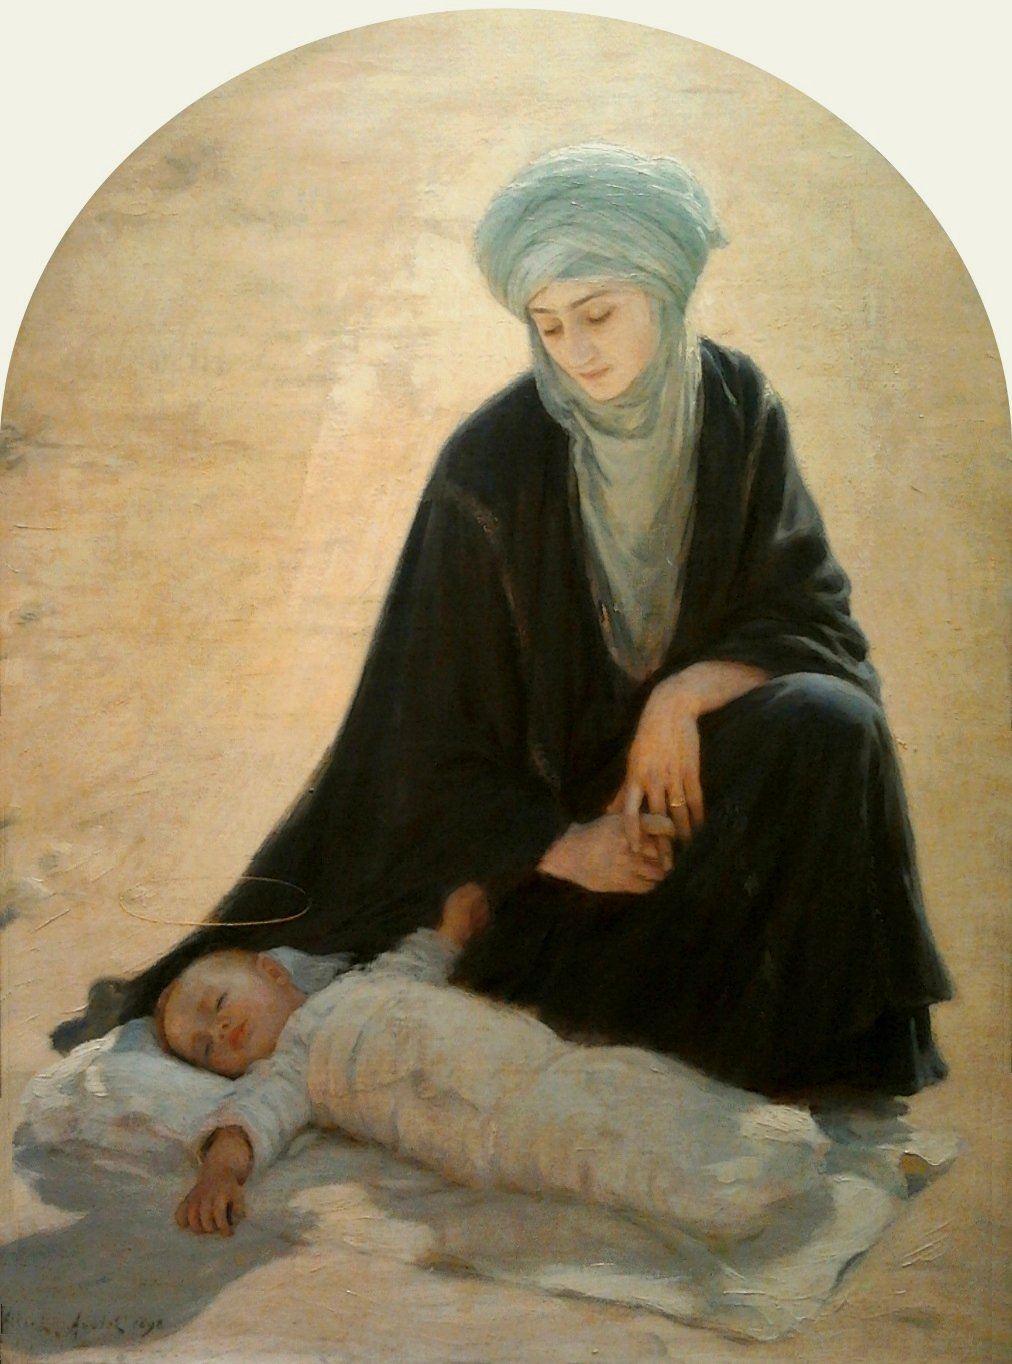 aublet arabic madonna and child